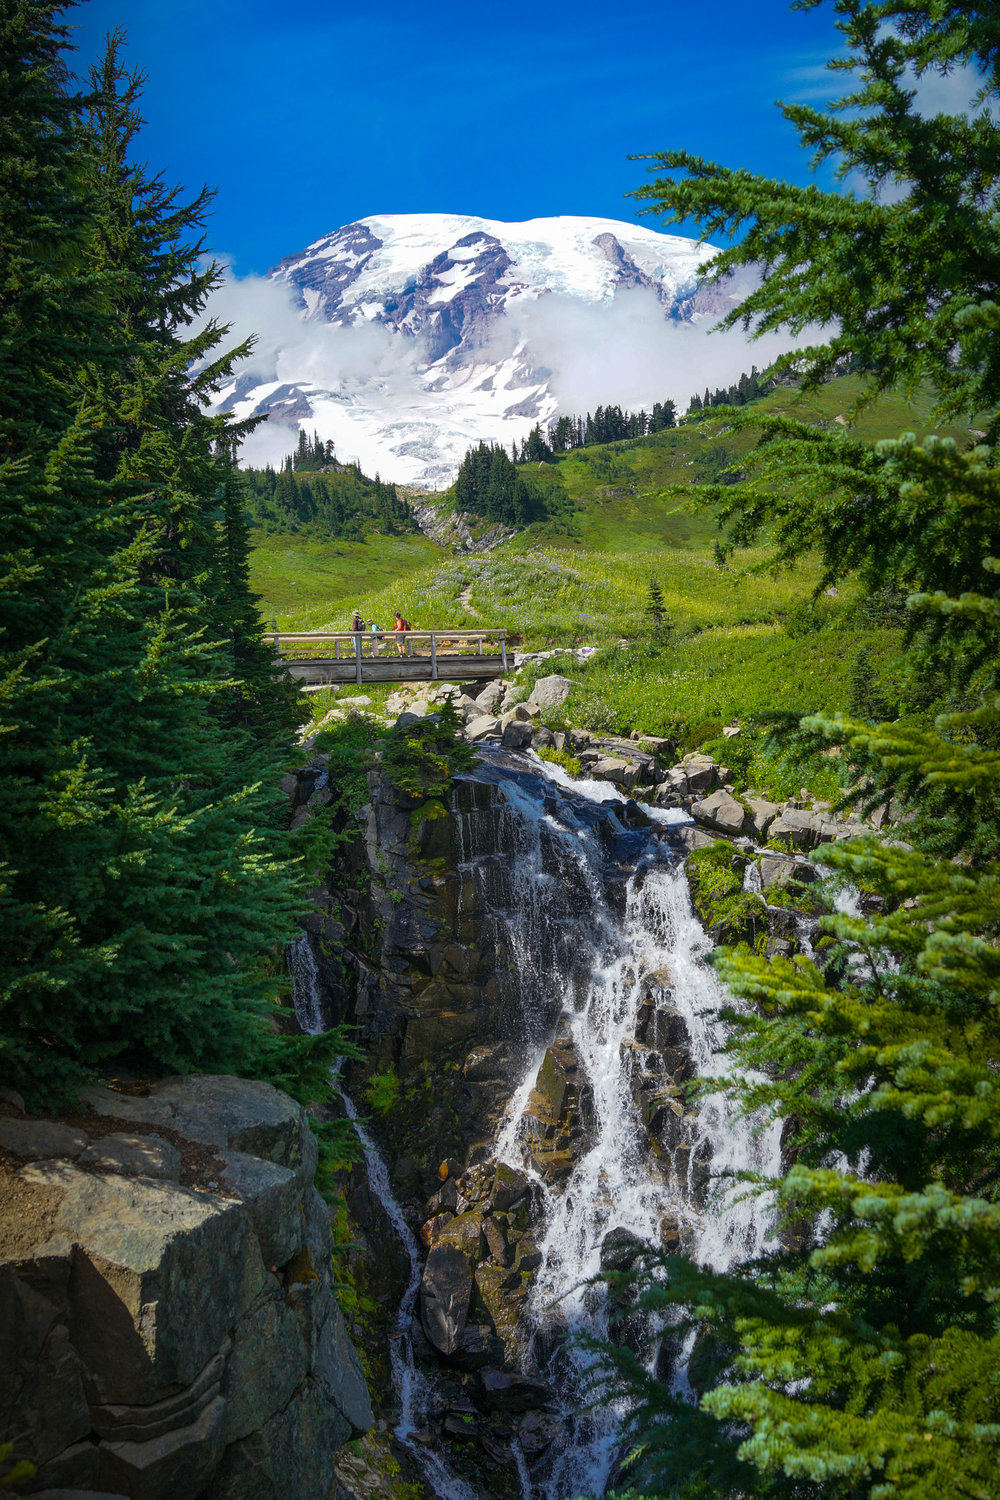 Myrtle Fall with Mount Rainier in the background